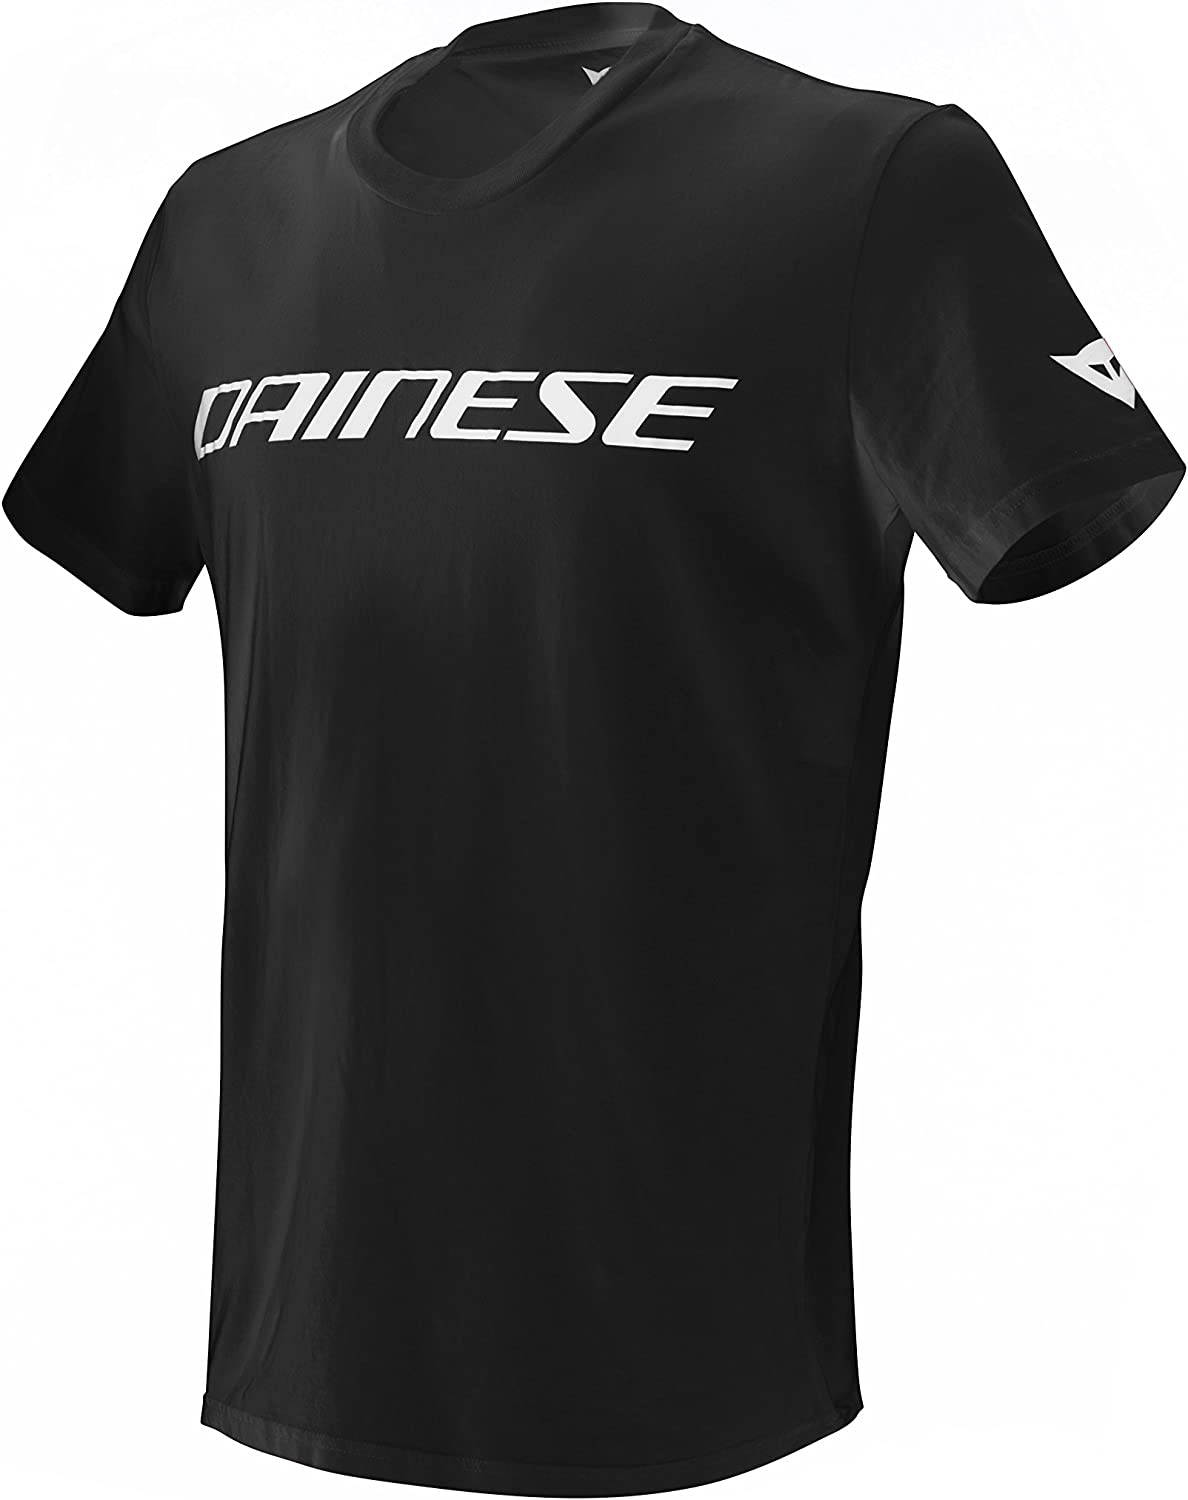 Dainese Genuine Free Shipping Men's T-Shirt Manufacturer direct delivery